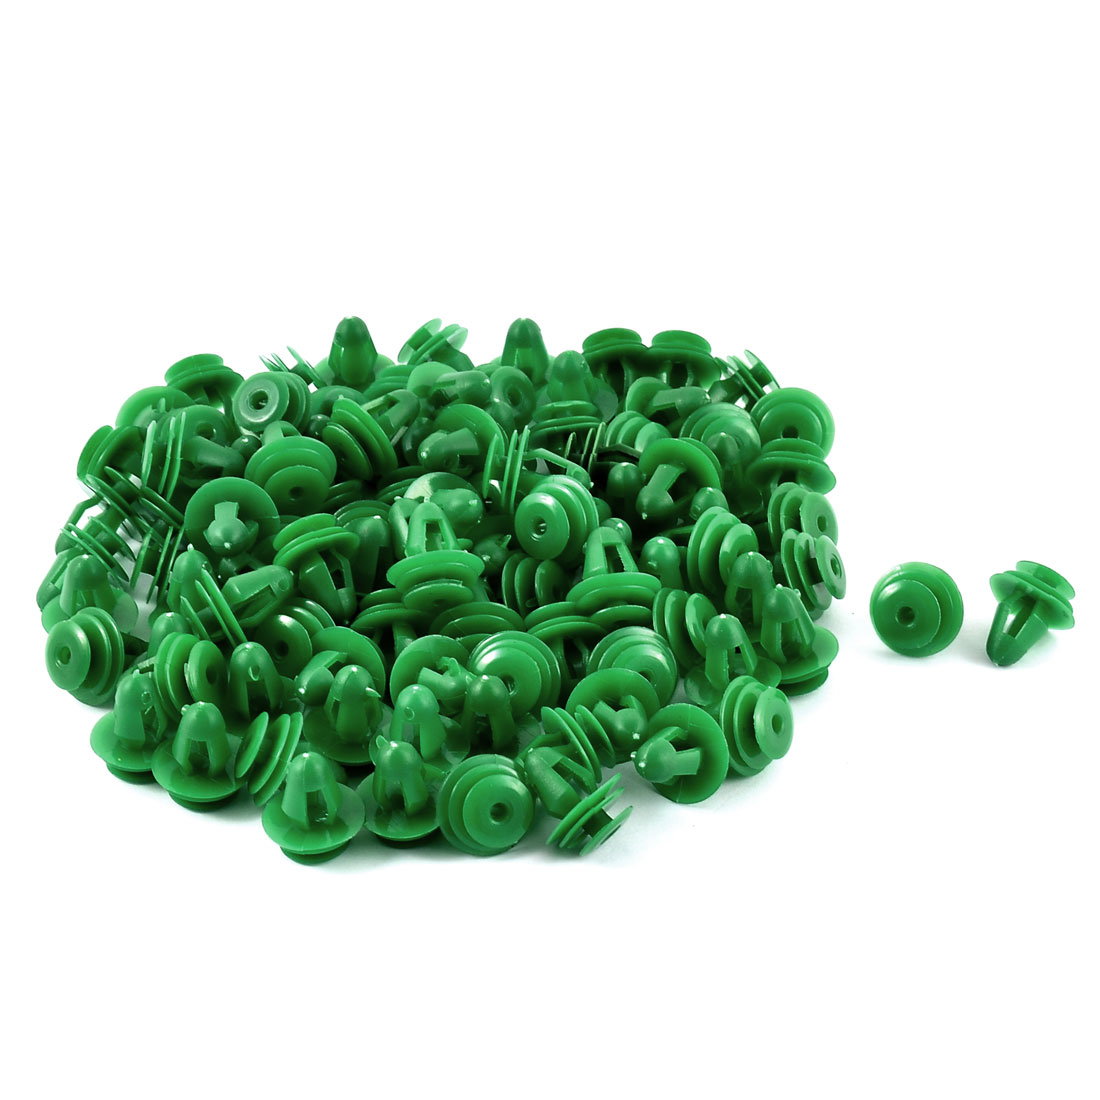 Green 8mm Hole Vehicle Car Van Door Plastic Rivet Fastener 100pcs